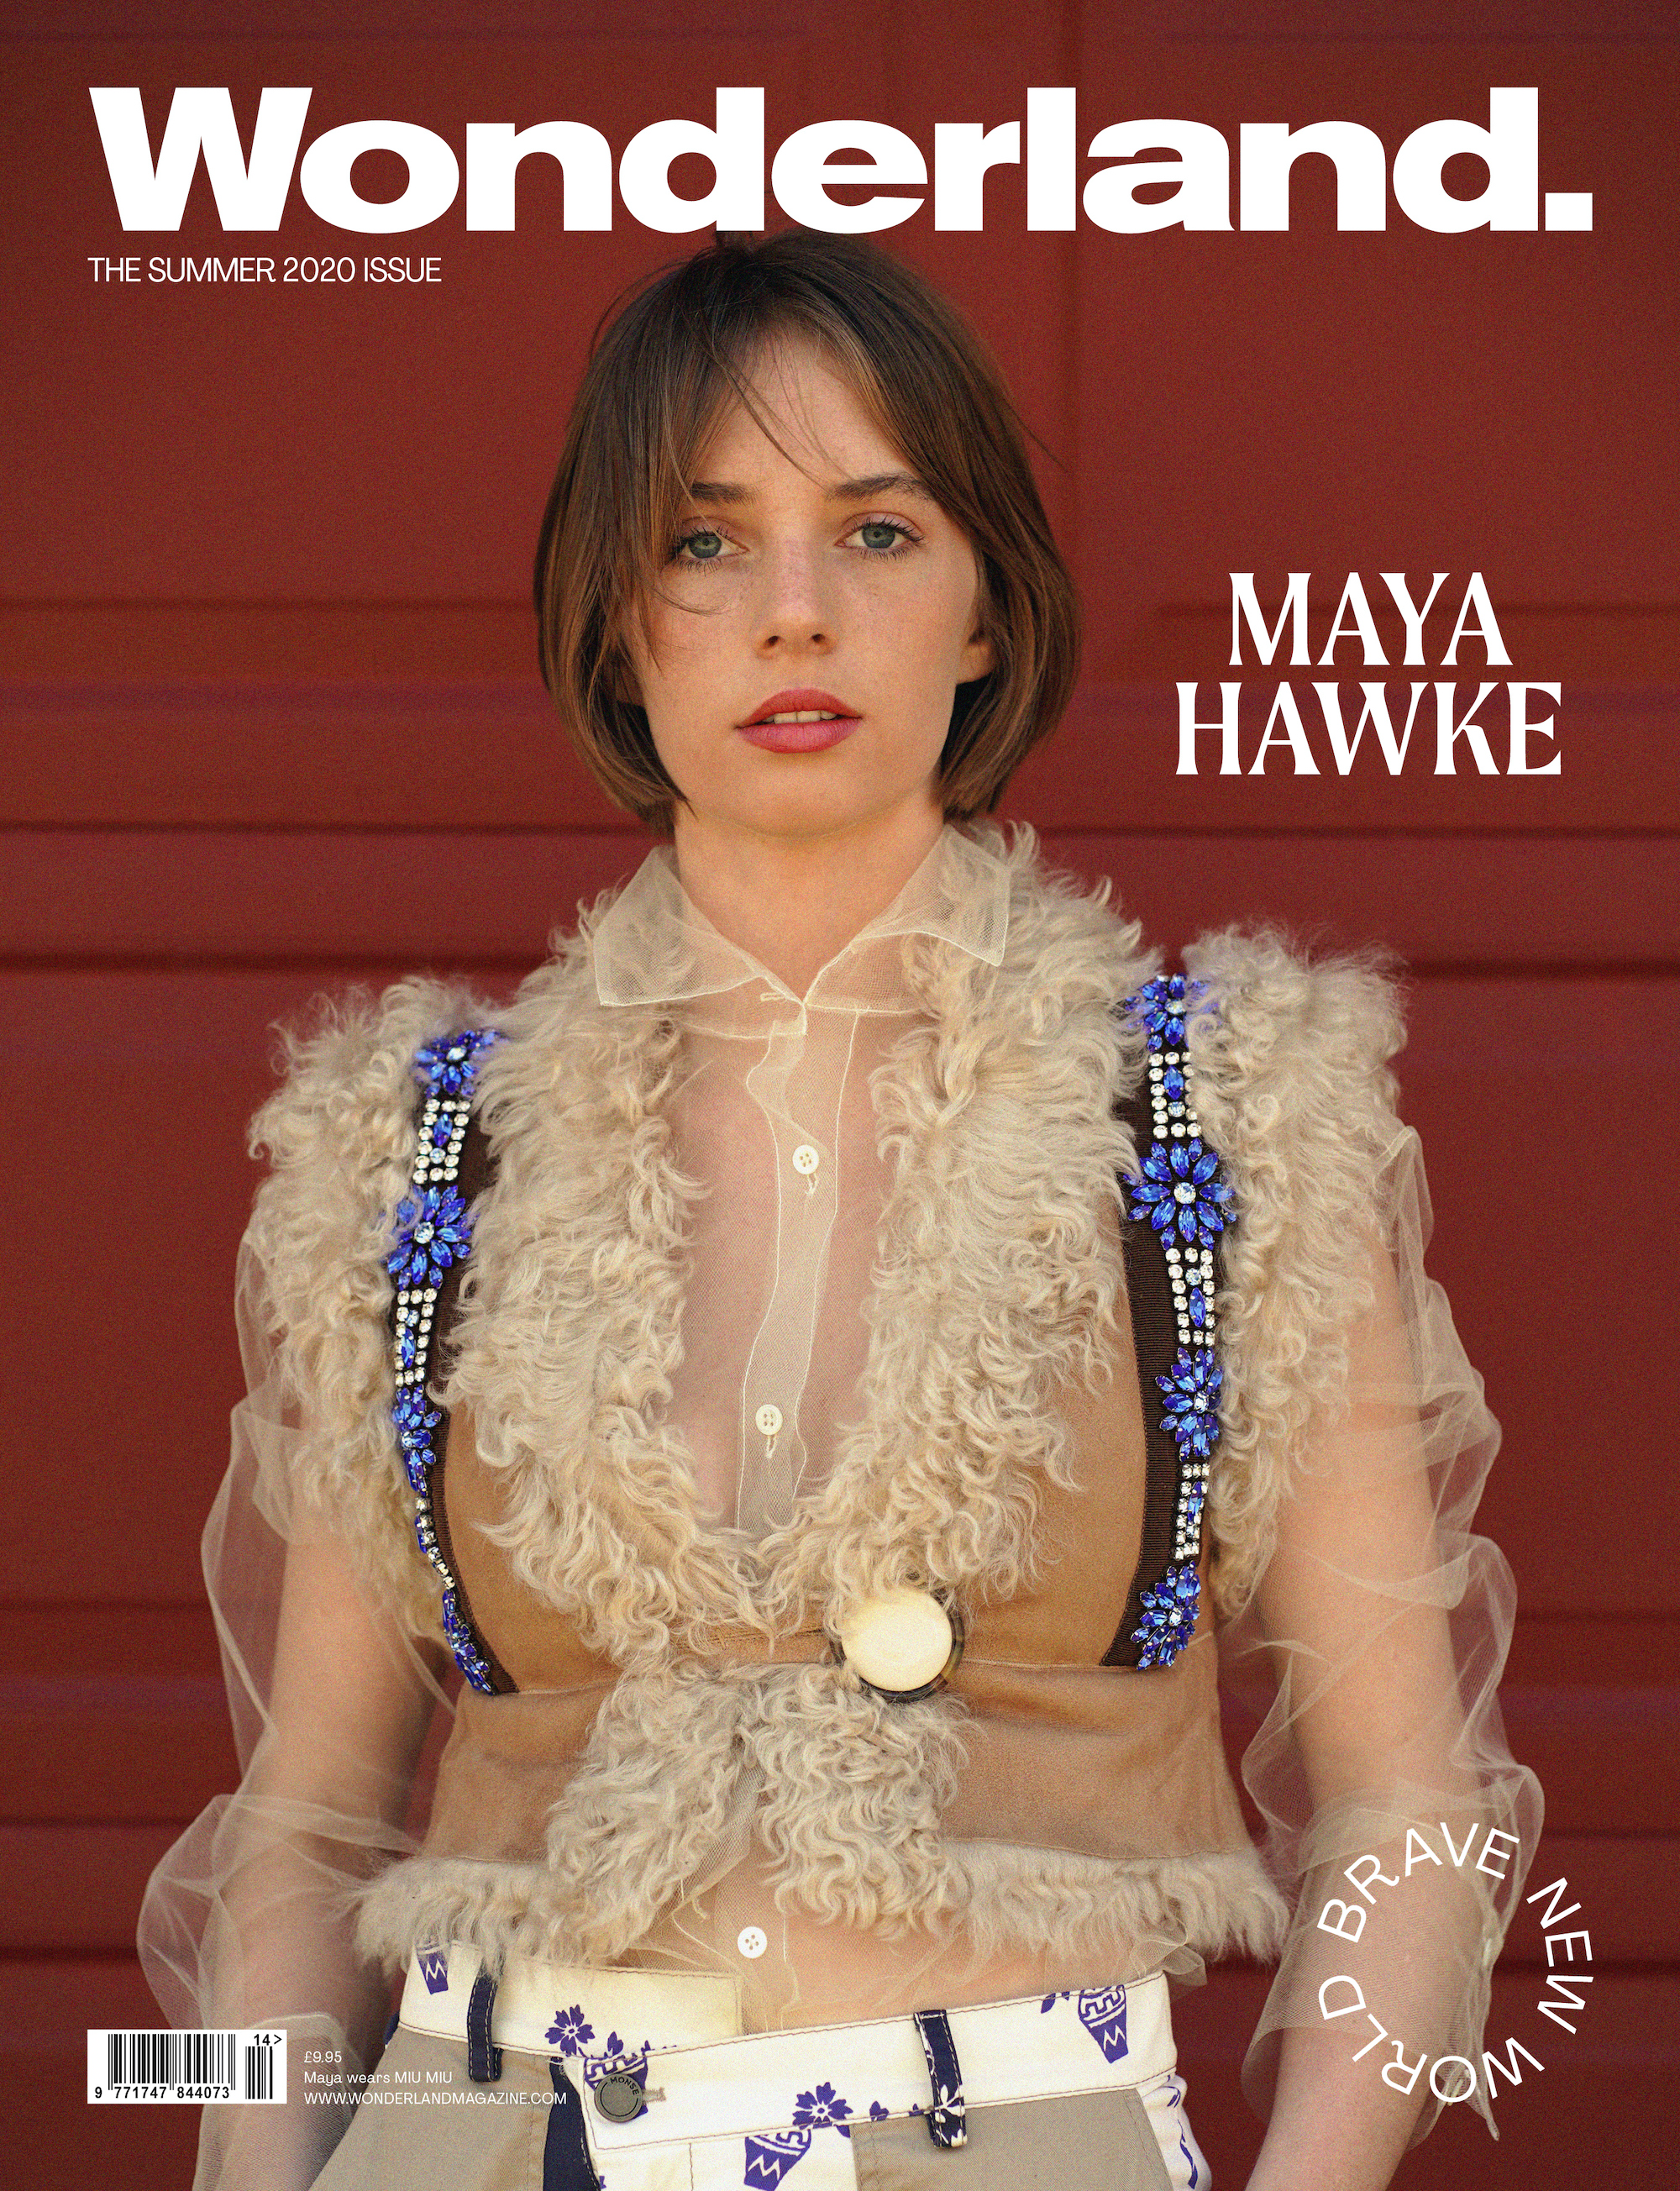 Maya Hawke covers the Summer 2020 issue of Wonderland